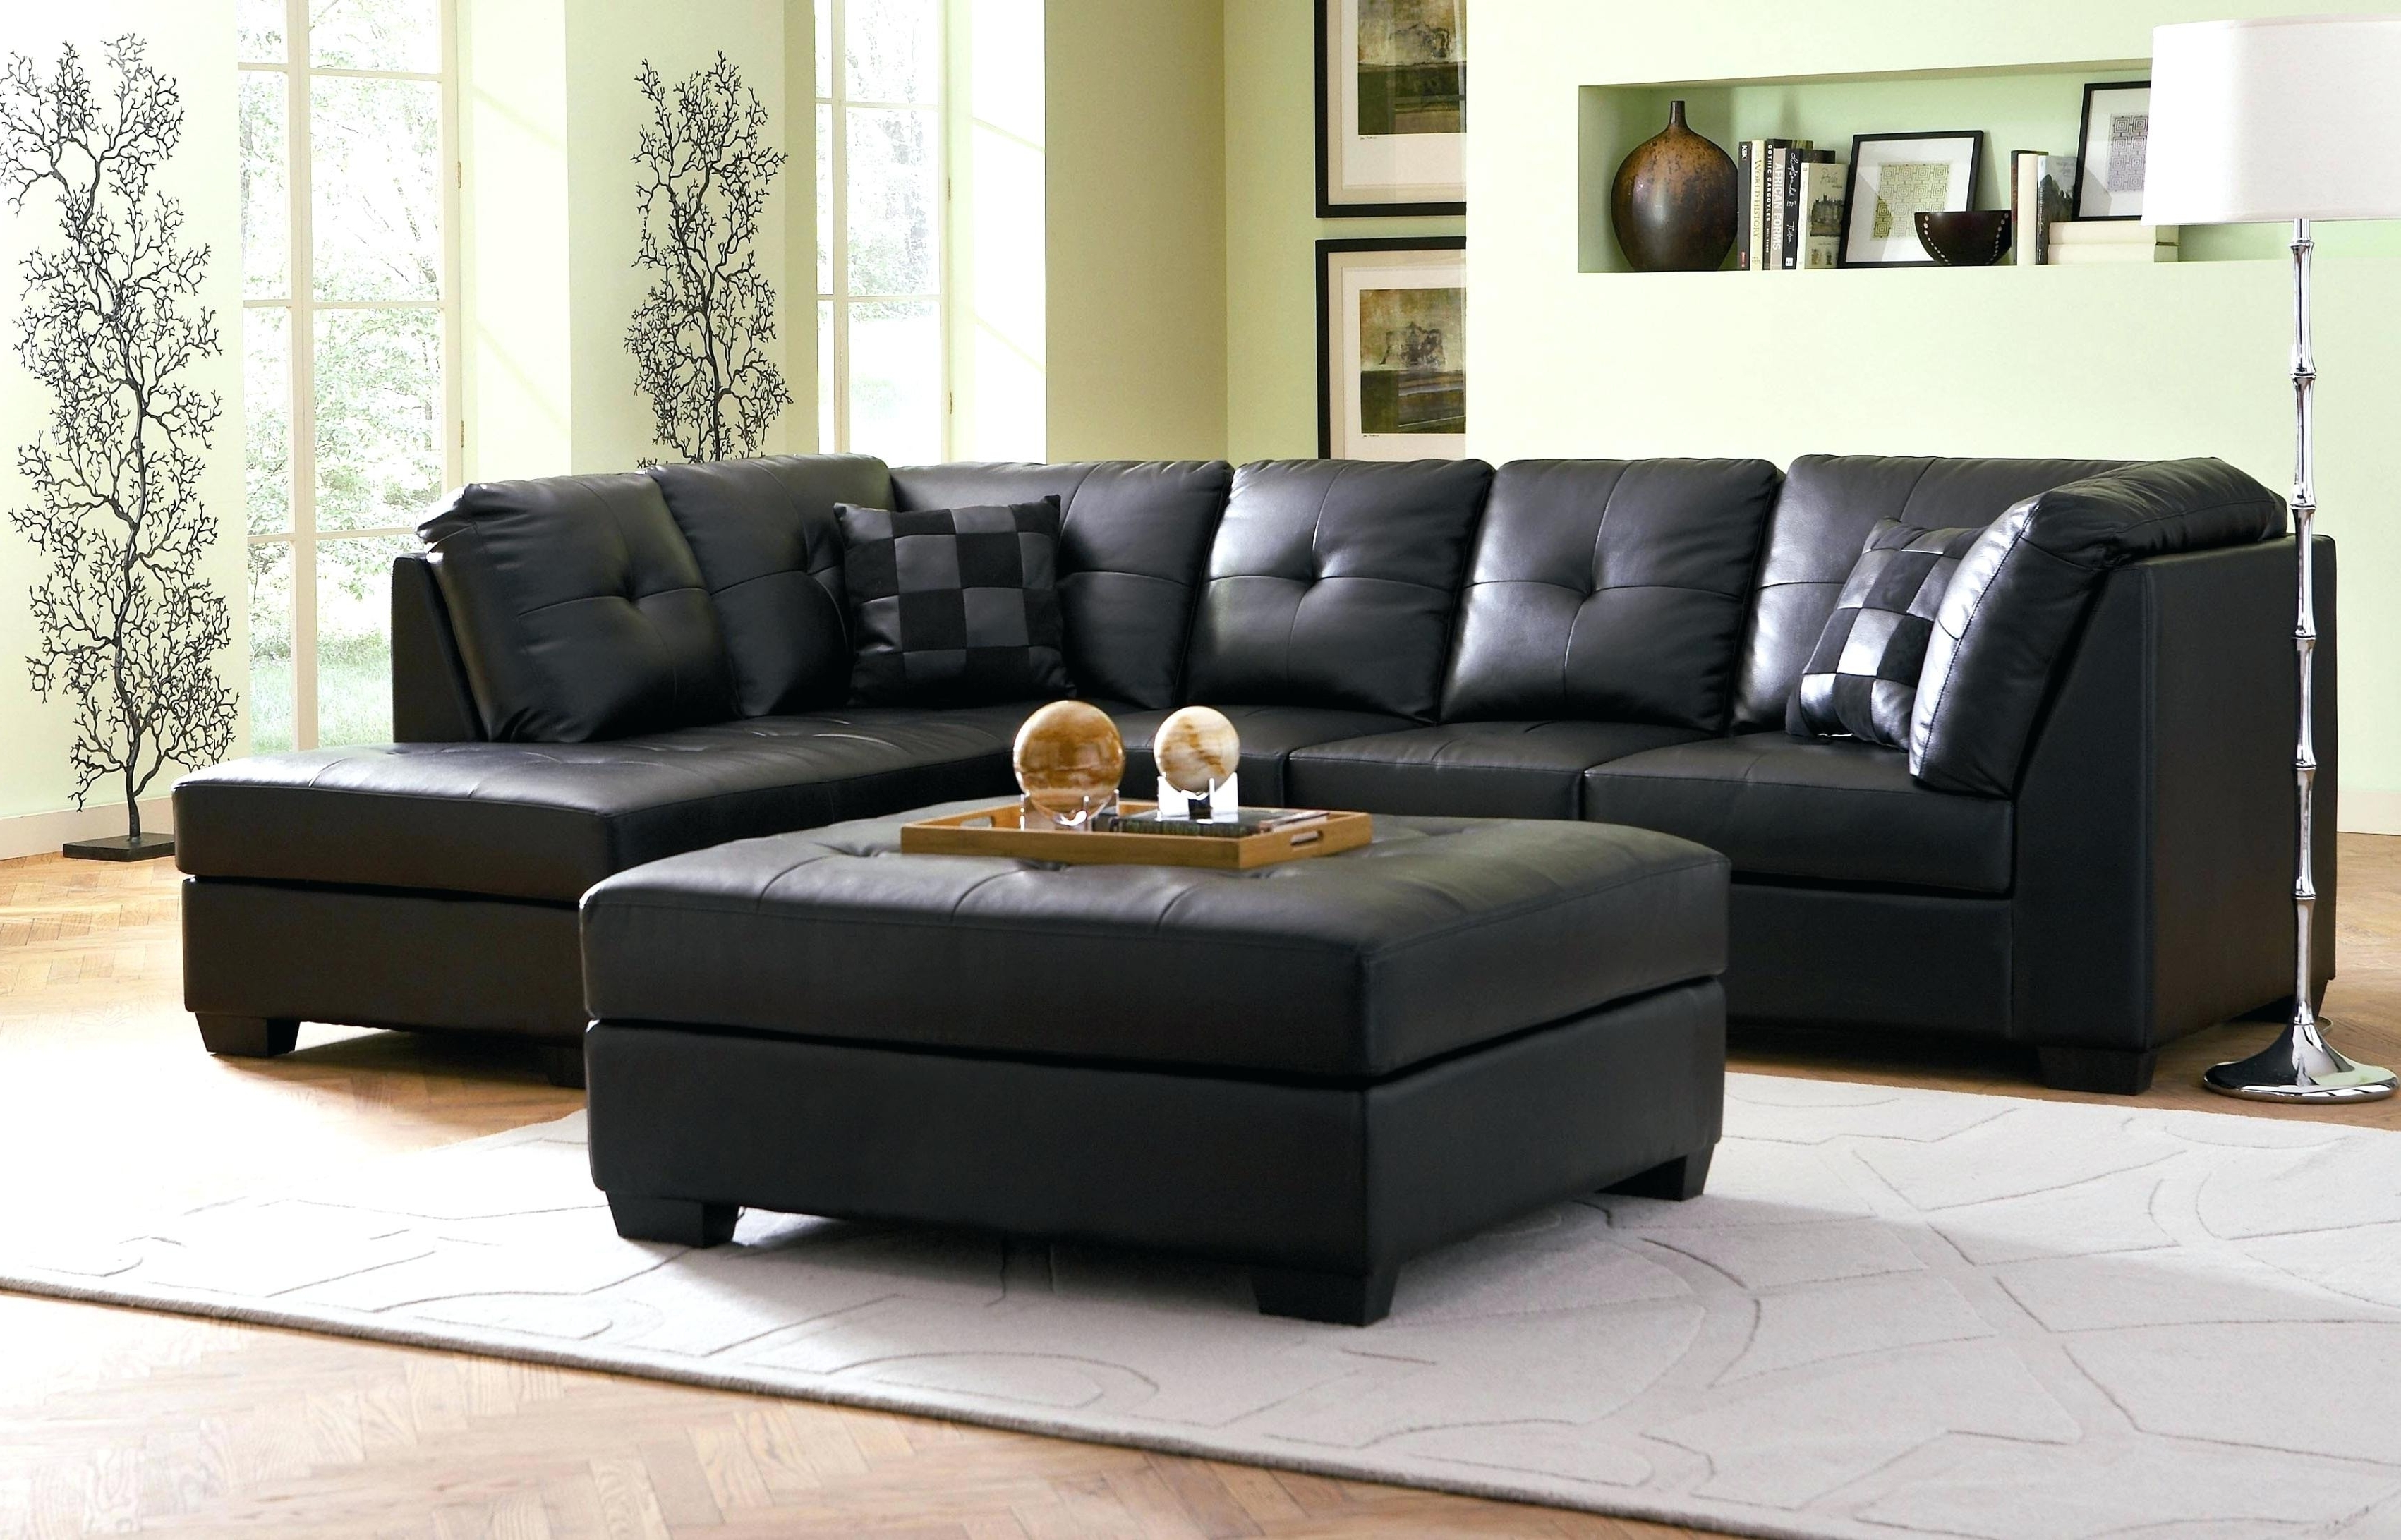 Sectional Sofas Under 300 Regarding Well Known Furniture : Magnificent Cheap Sectional Sofas Under 300 Lovely (View 15 of 20)